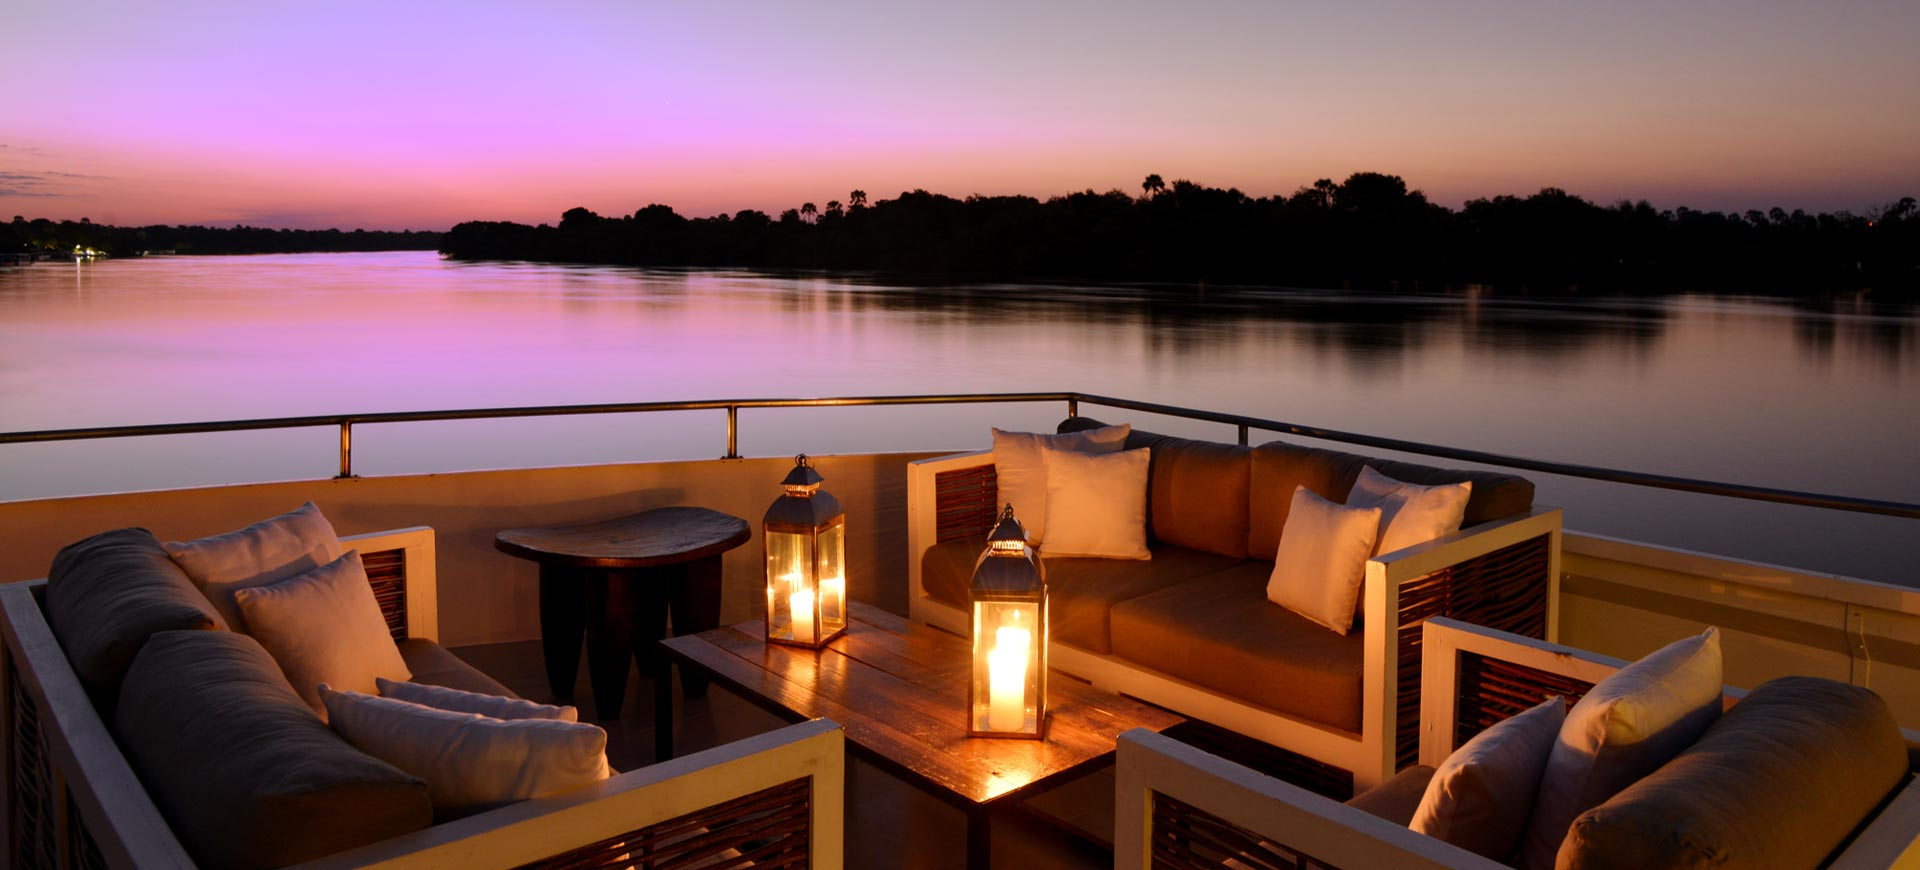 Conference Zambezi Sunset Cruise